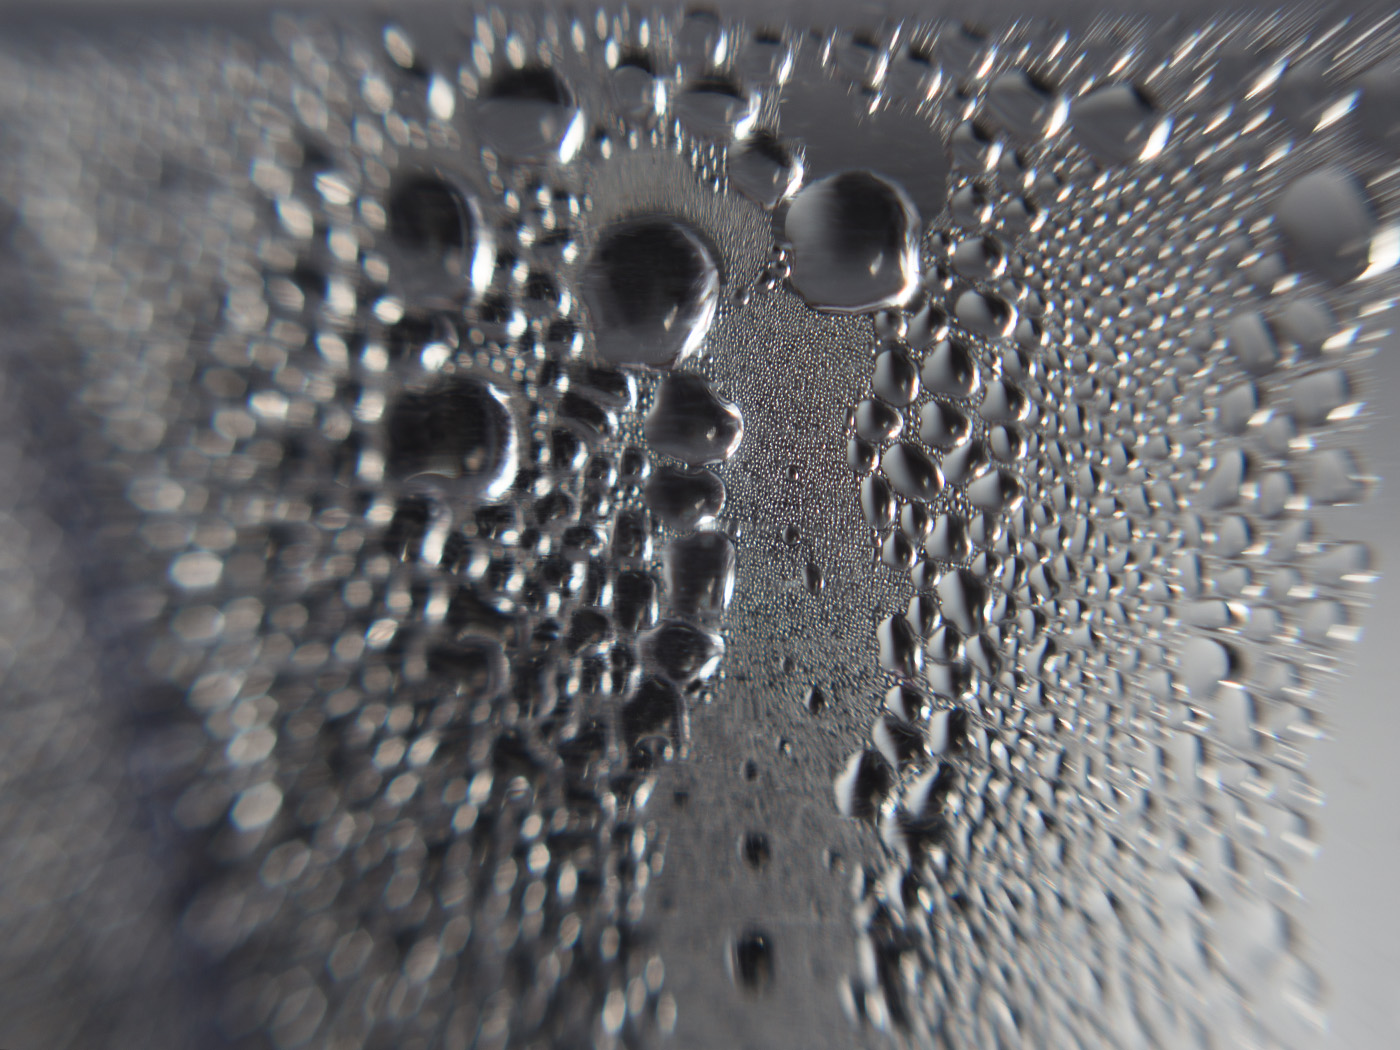 Condensation on the side of a Brita filter. Macro photo by Andrée Fredette